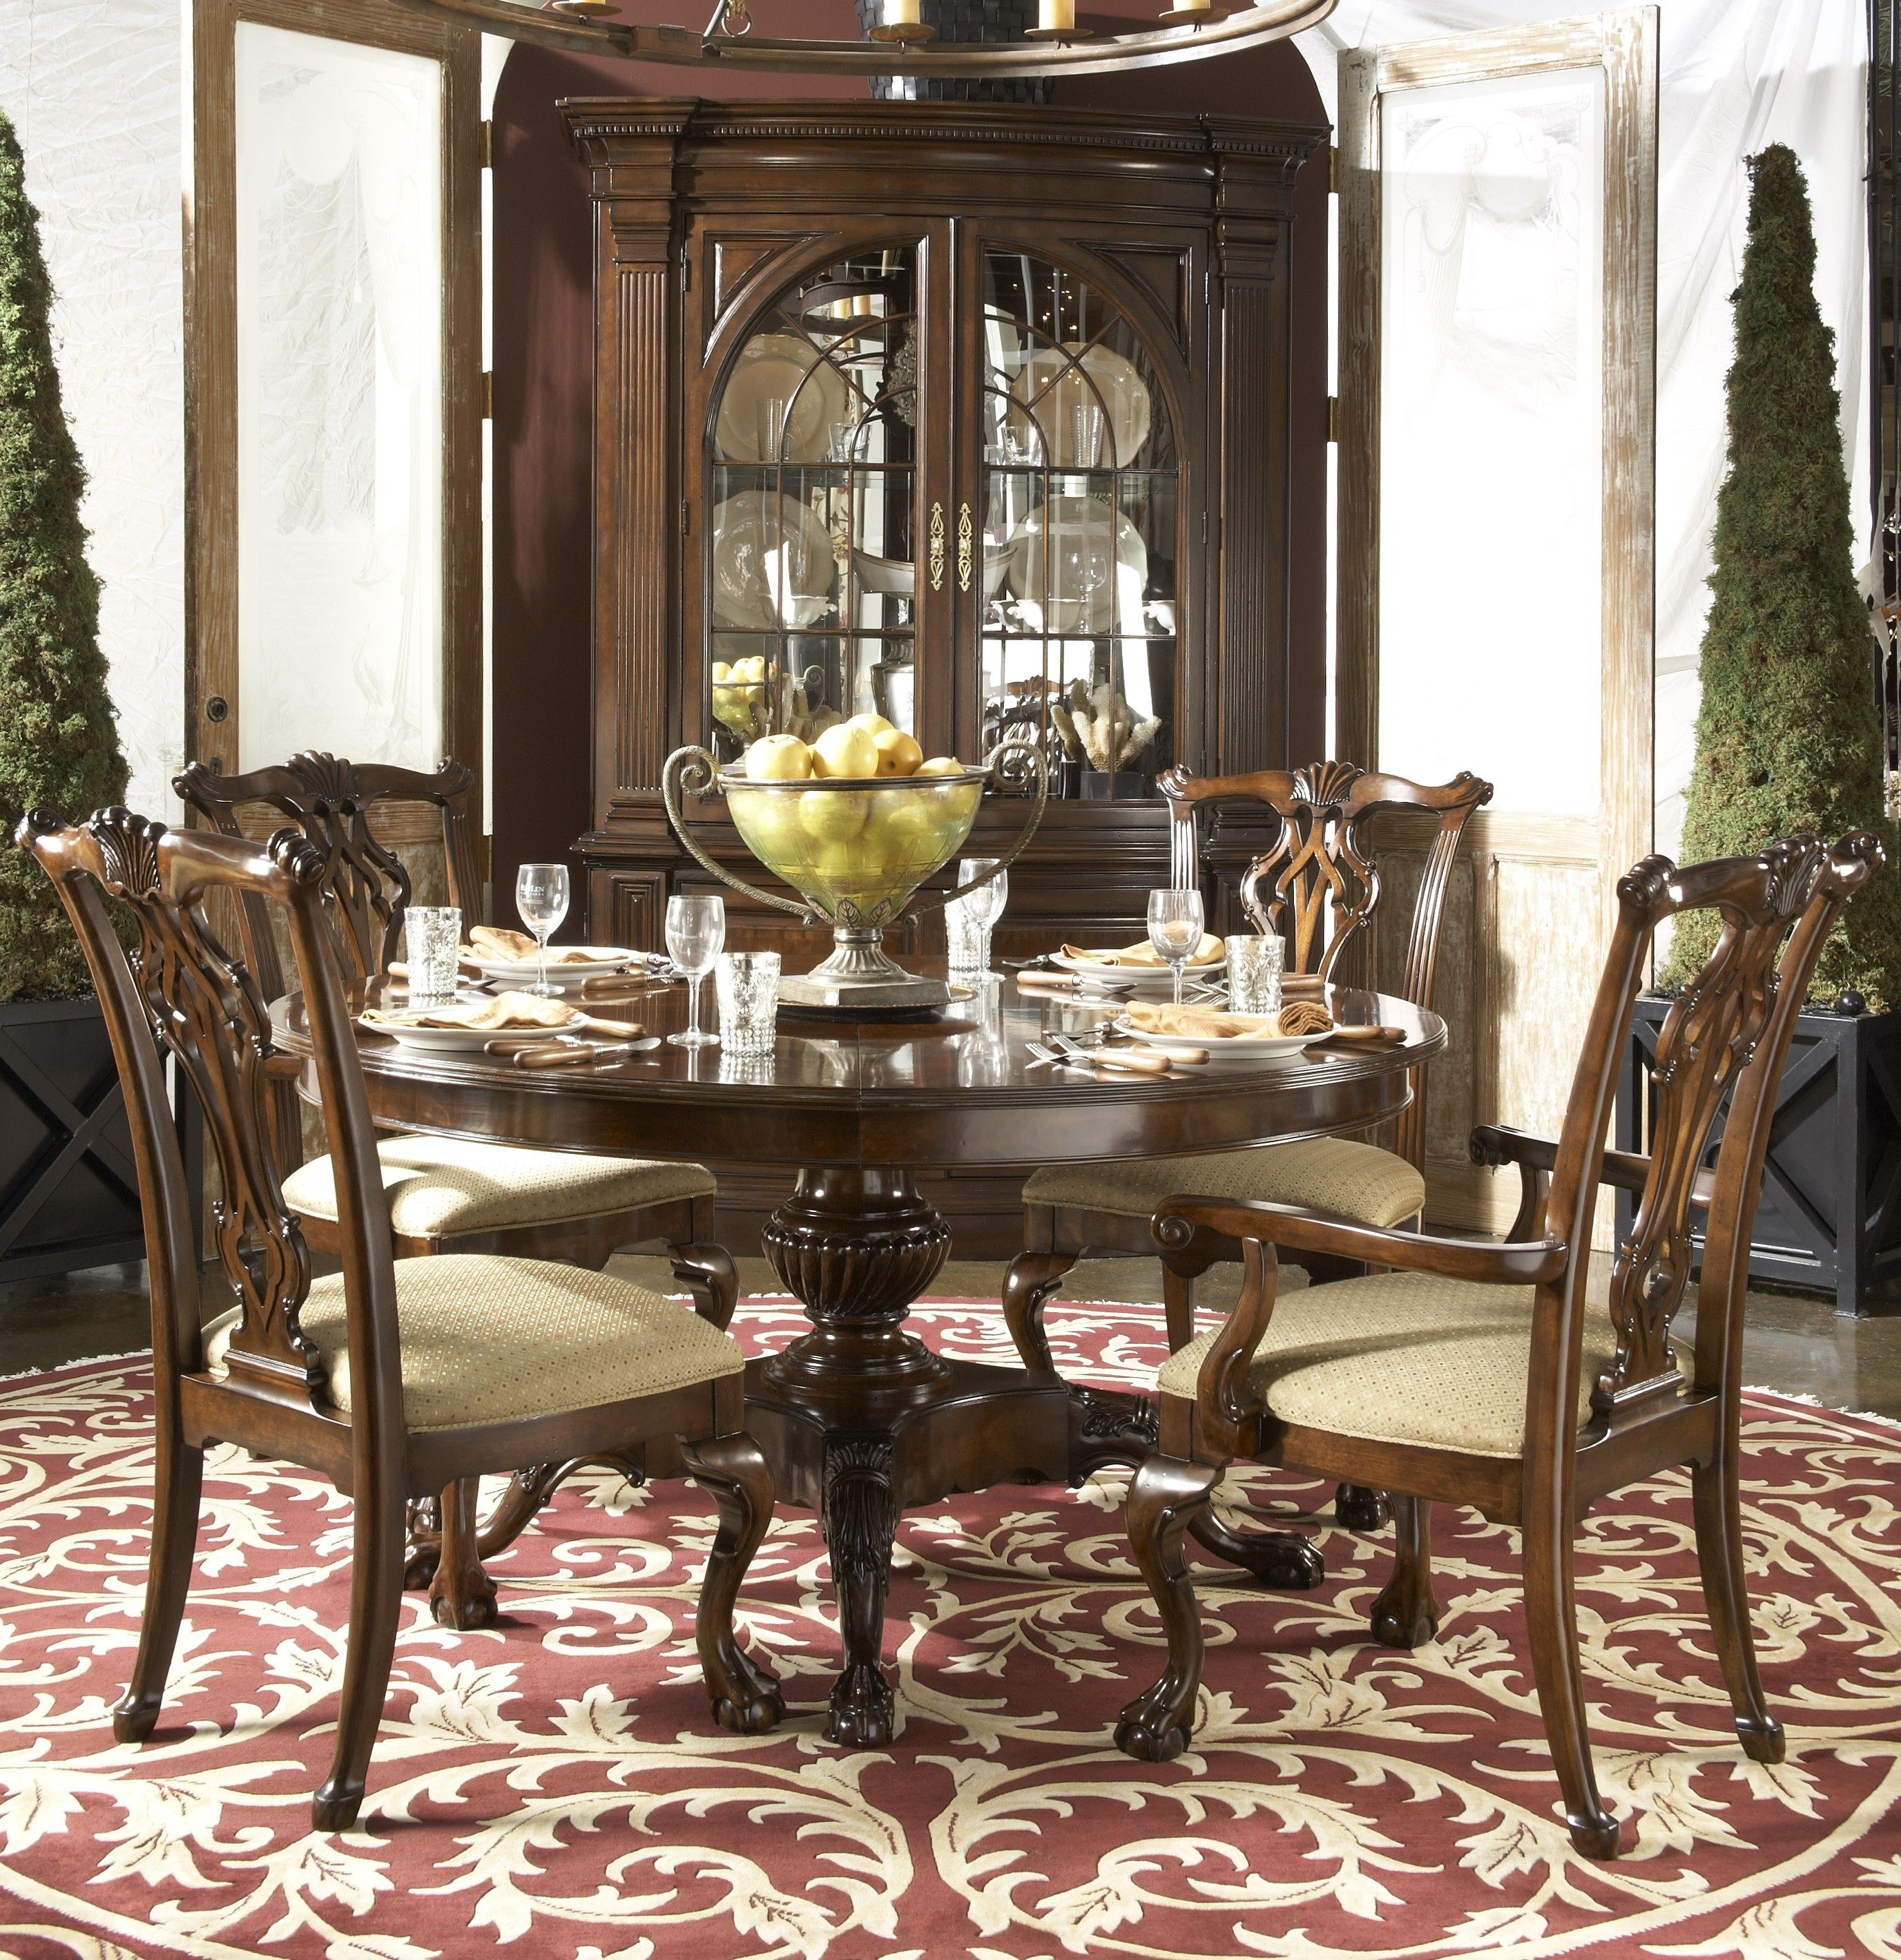 Fantastic 30 Beautiful Photo Of Cherry Dining Room Dining Room Download Free Architecture Designs Rallybritishbridgeorg